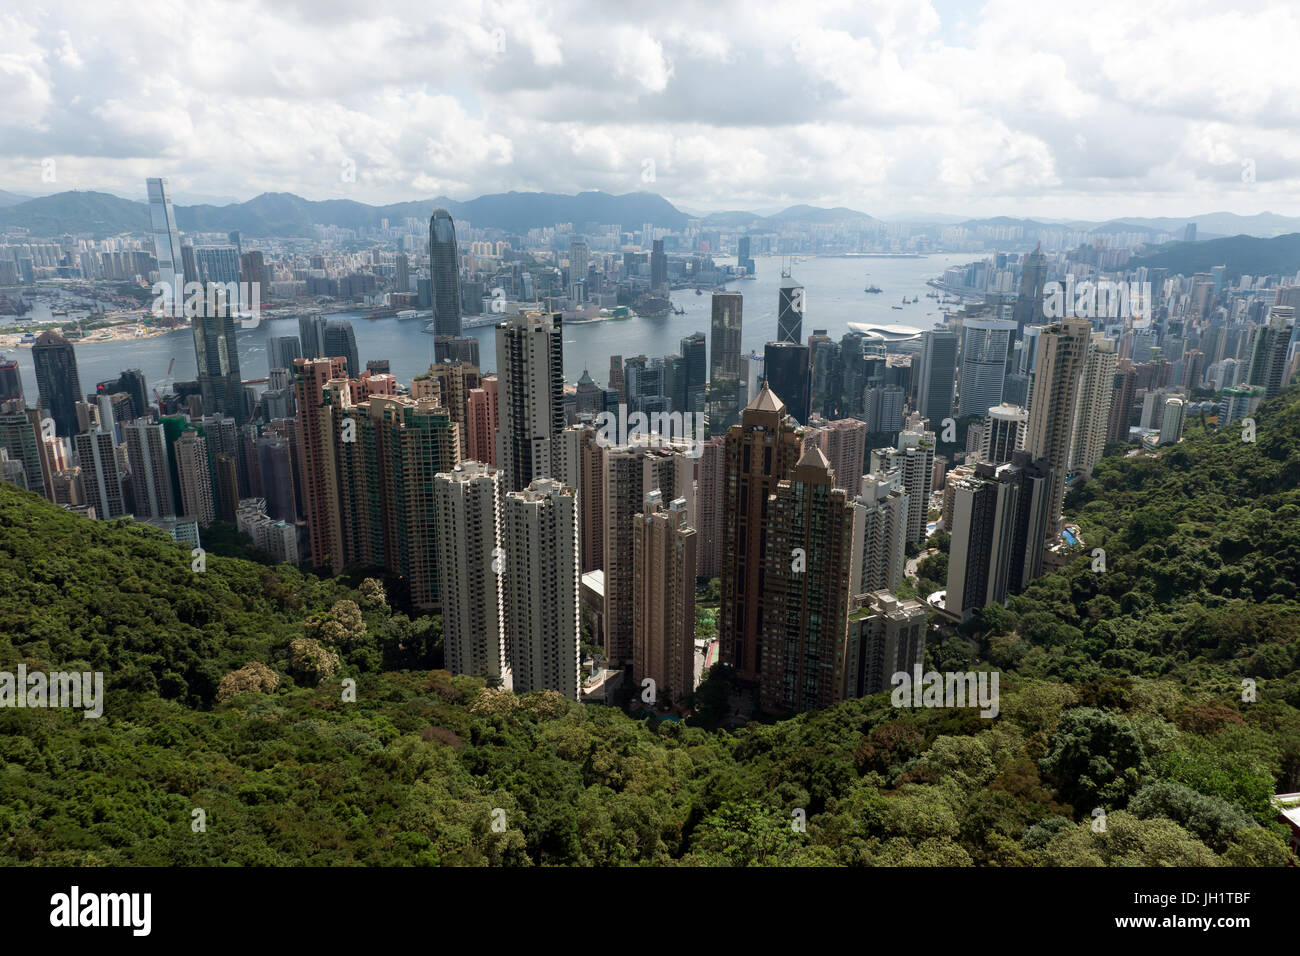 Aerial view of Hong Kong from the viewing terrace of Peak Tower below the summit of Victoria Peak - Stock Image